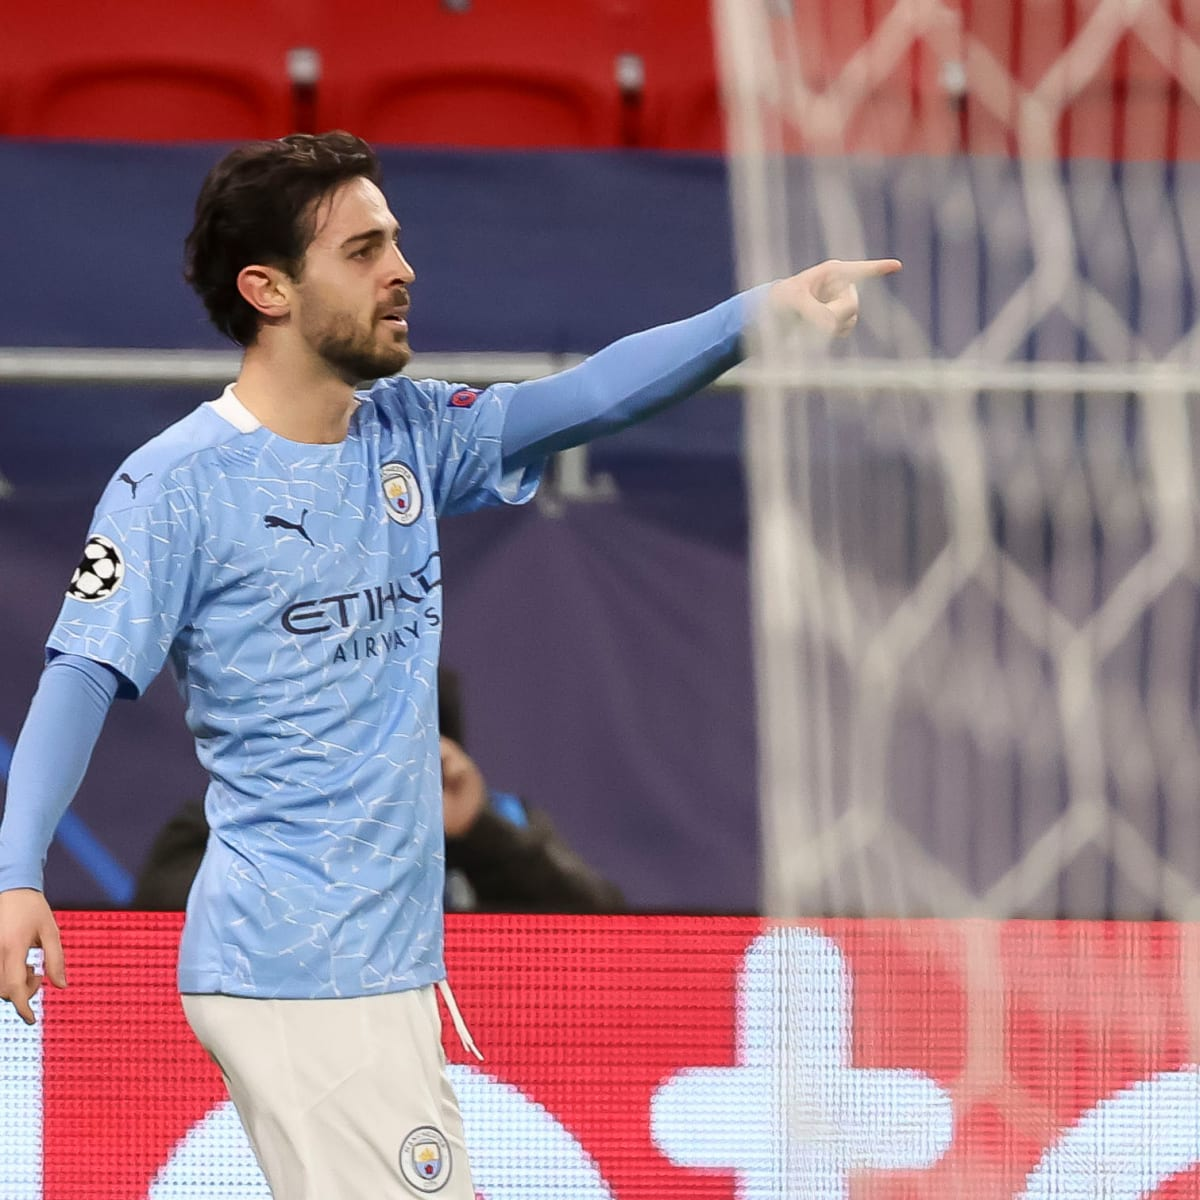 Man City Star 'Would Like To Leave' Club - Player 'Had His Heart Set' on Switch To La Liga Giants Barcelona